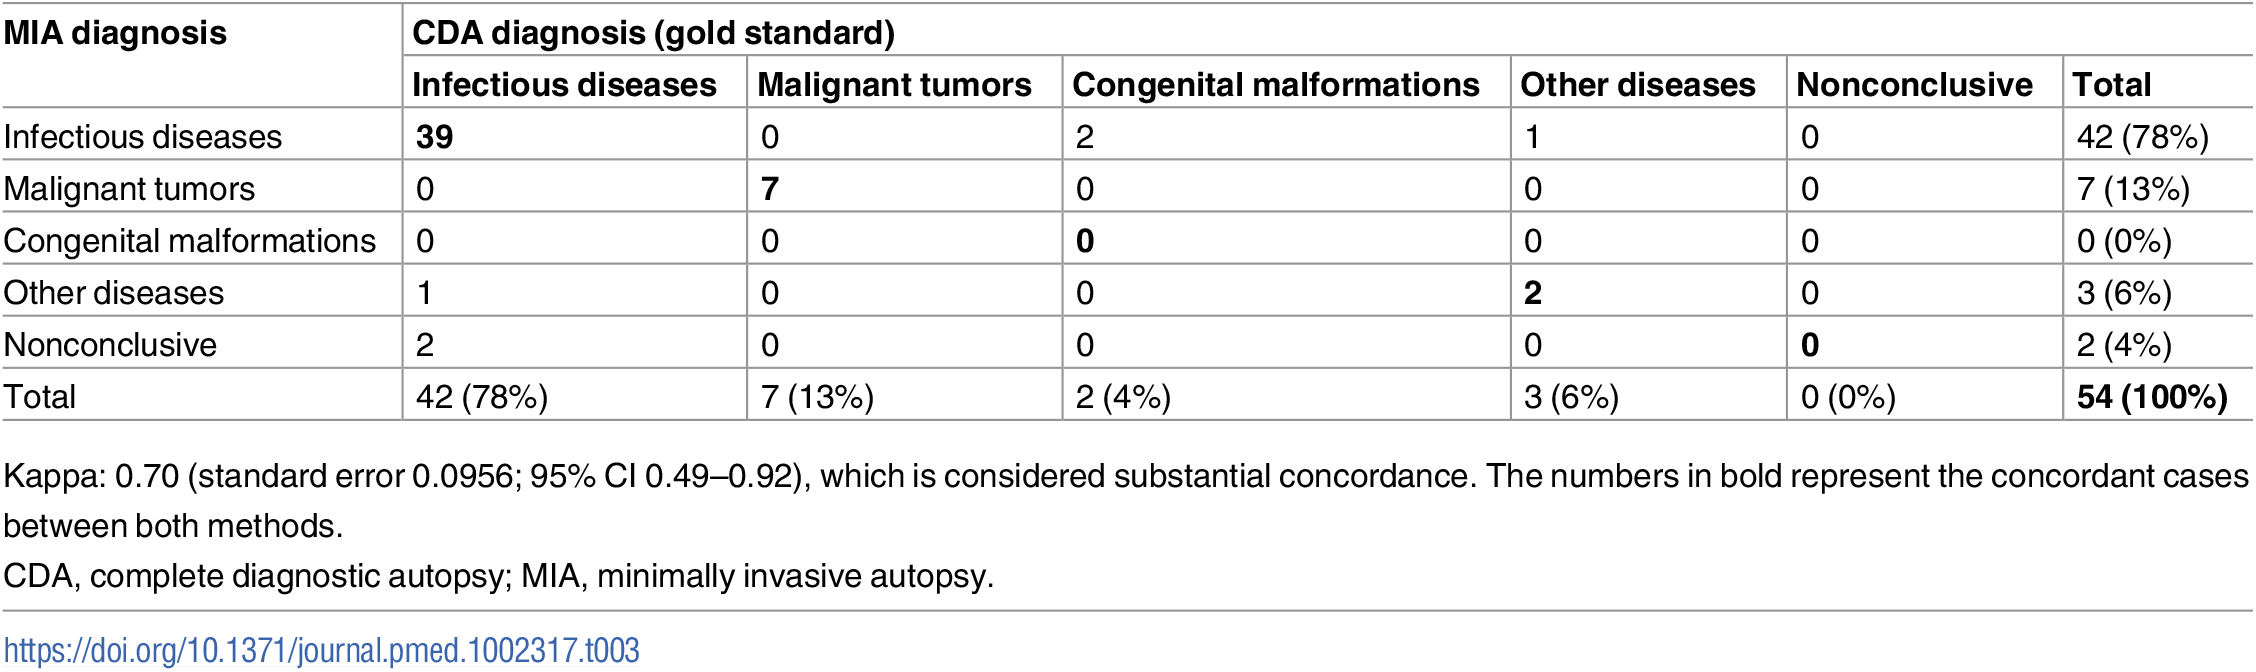 Concordance of the categorization of the cause of death established by the minimally invasive autopsy and the complete diagnostic autopsy (gold standard).